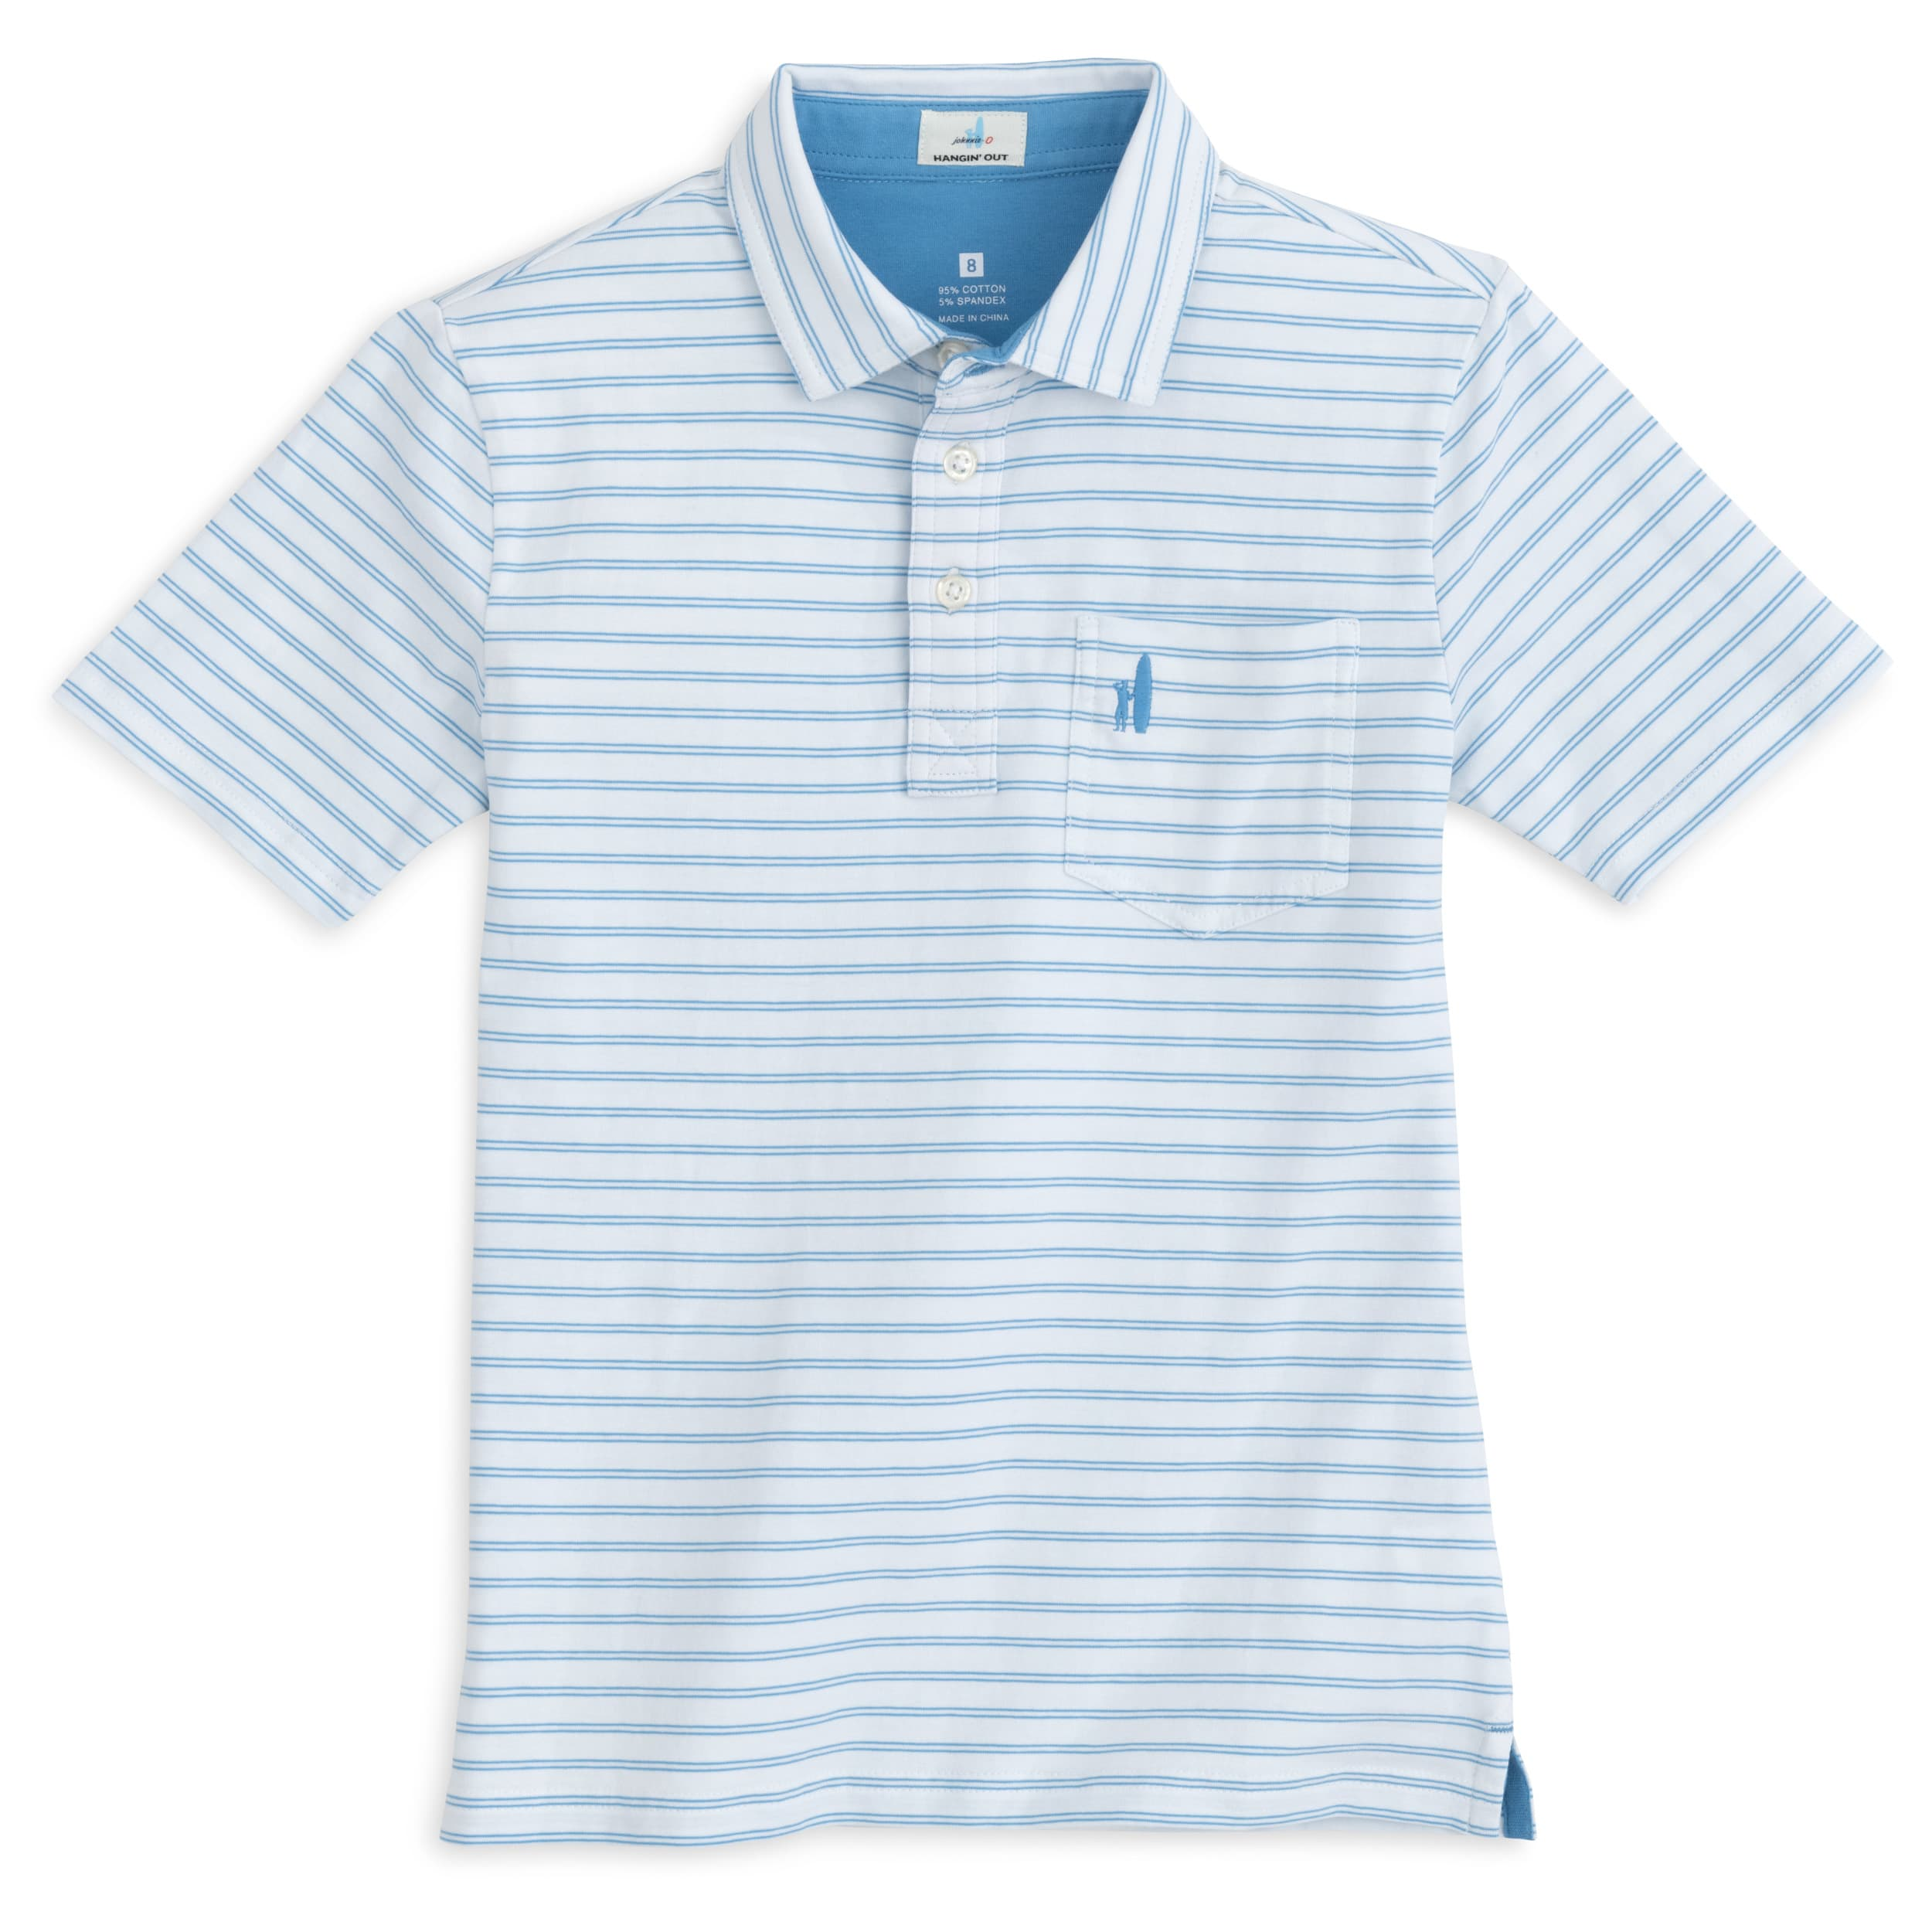 ORIGINAL JR POLO MARFA STRIPE